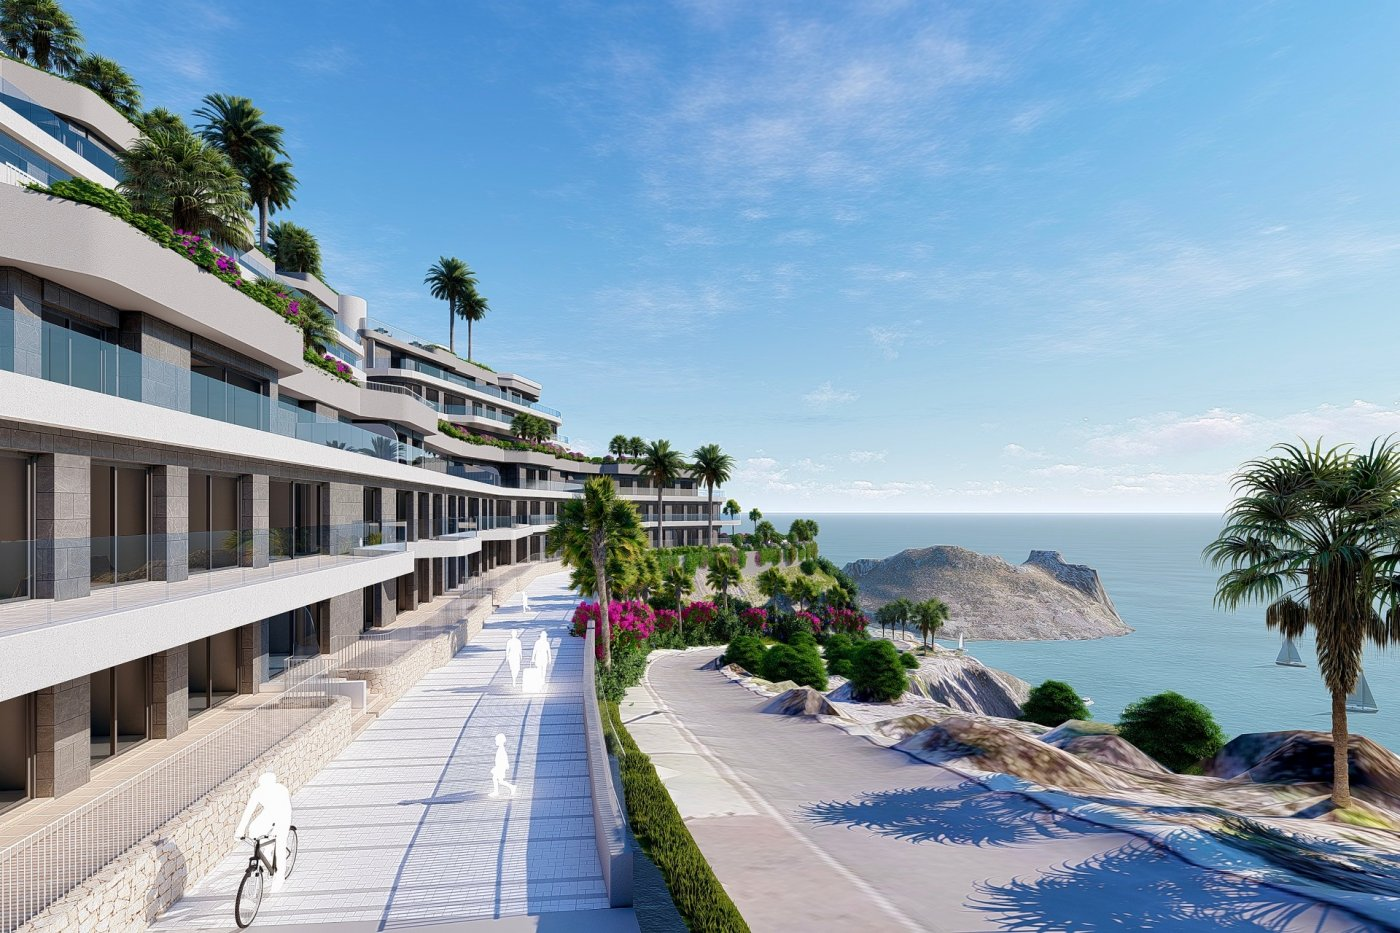 Gallery Image 14 of Luxury 1 bed penthouse with massive 59 m2 solarium and exceptional views